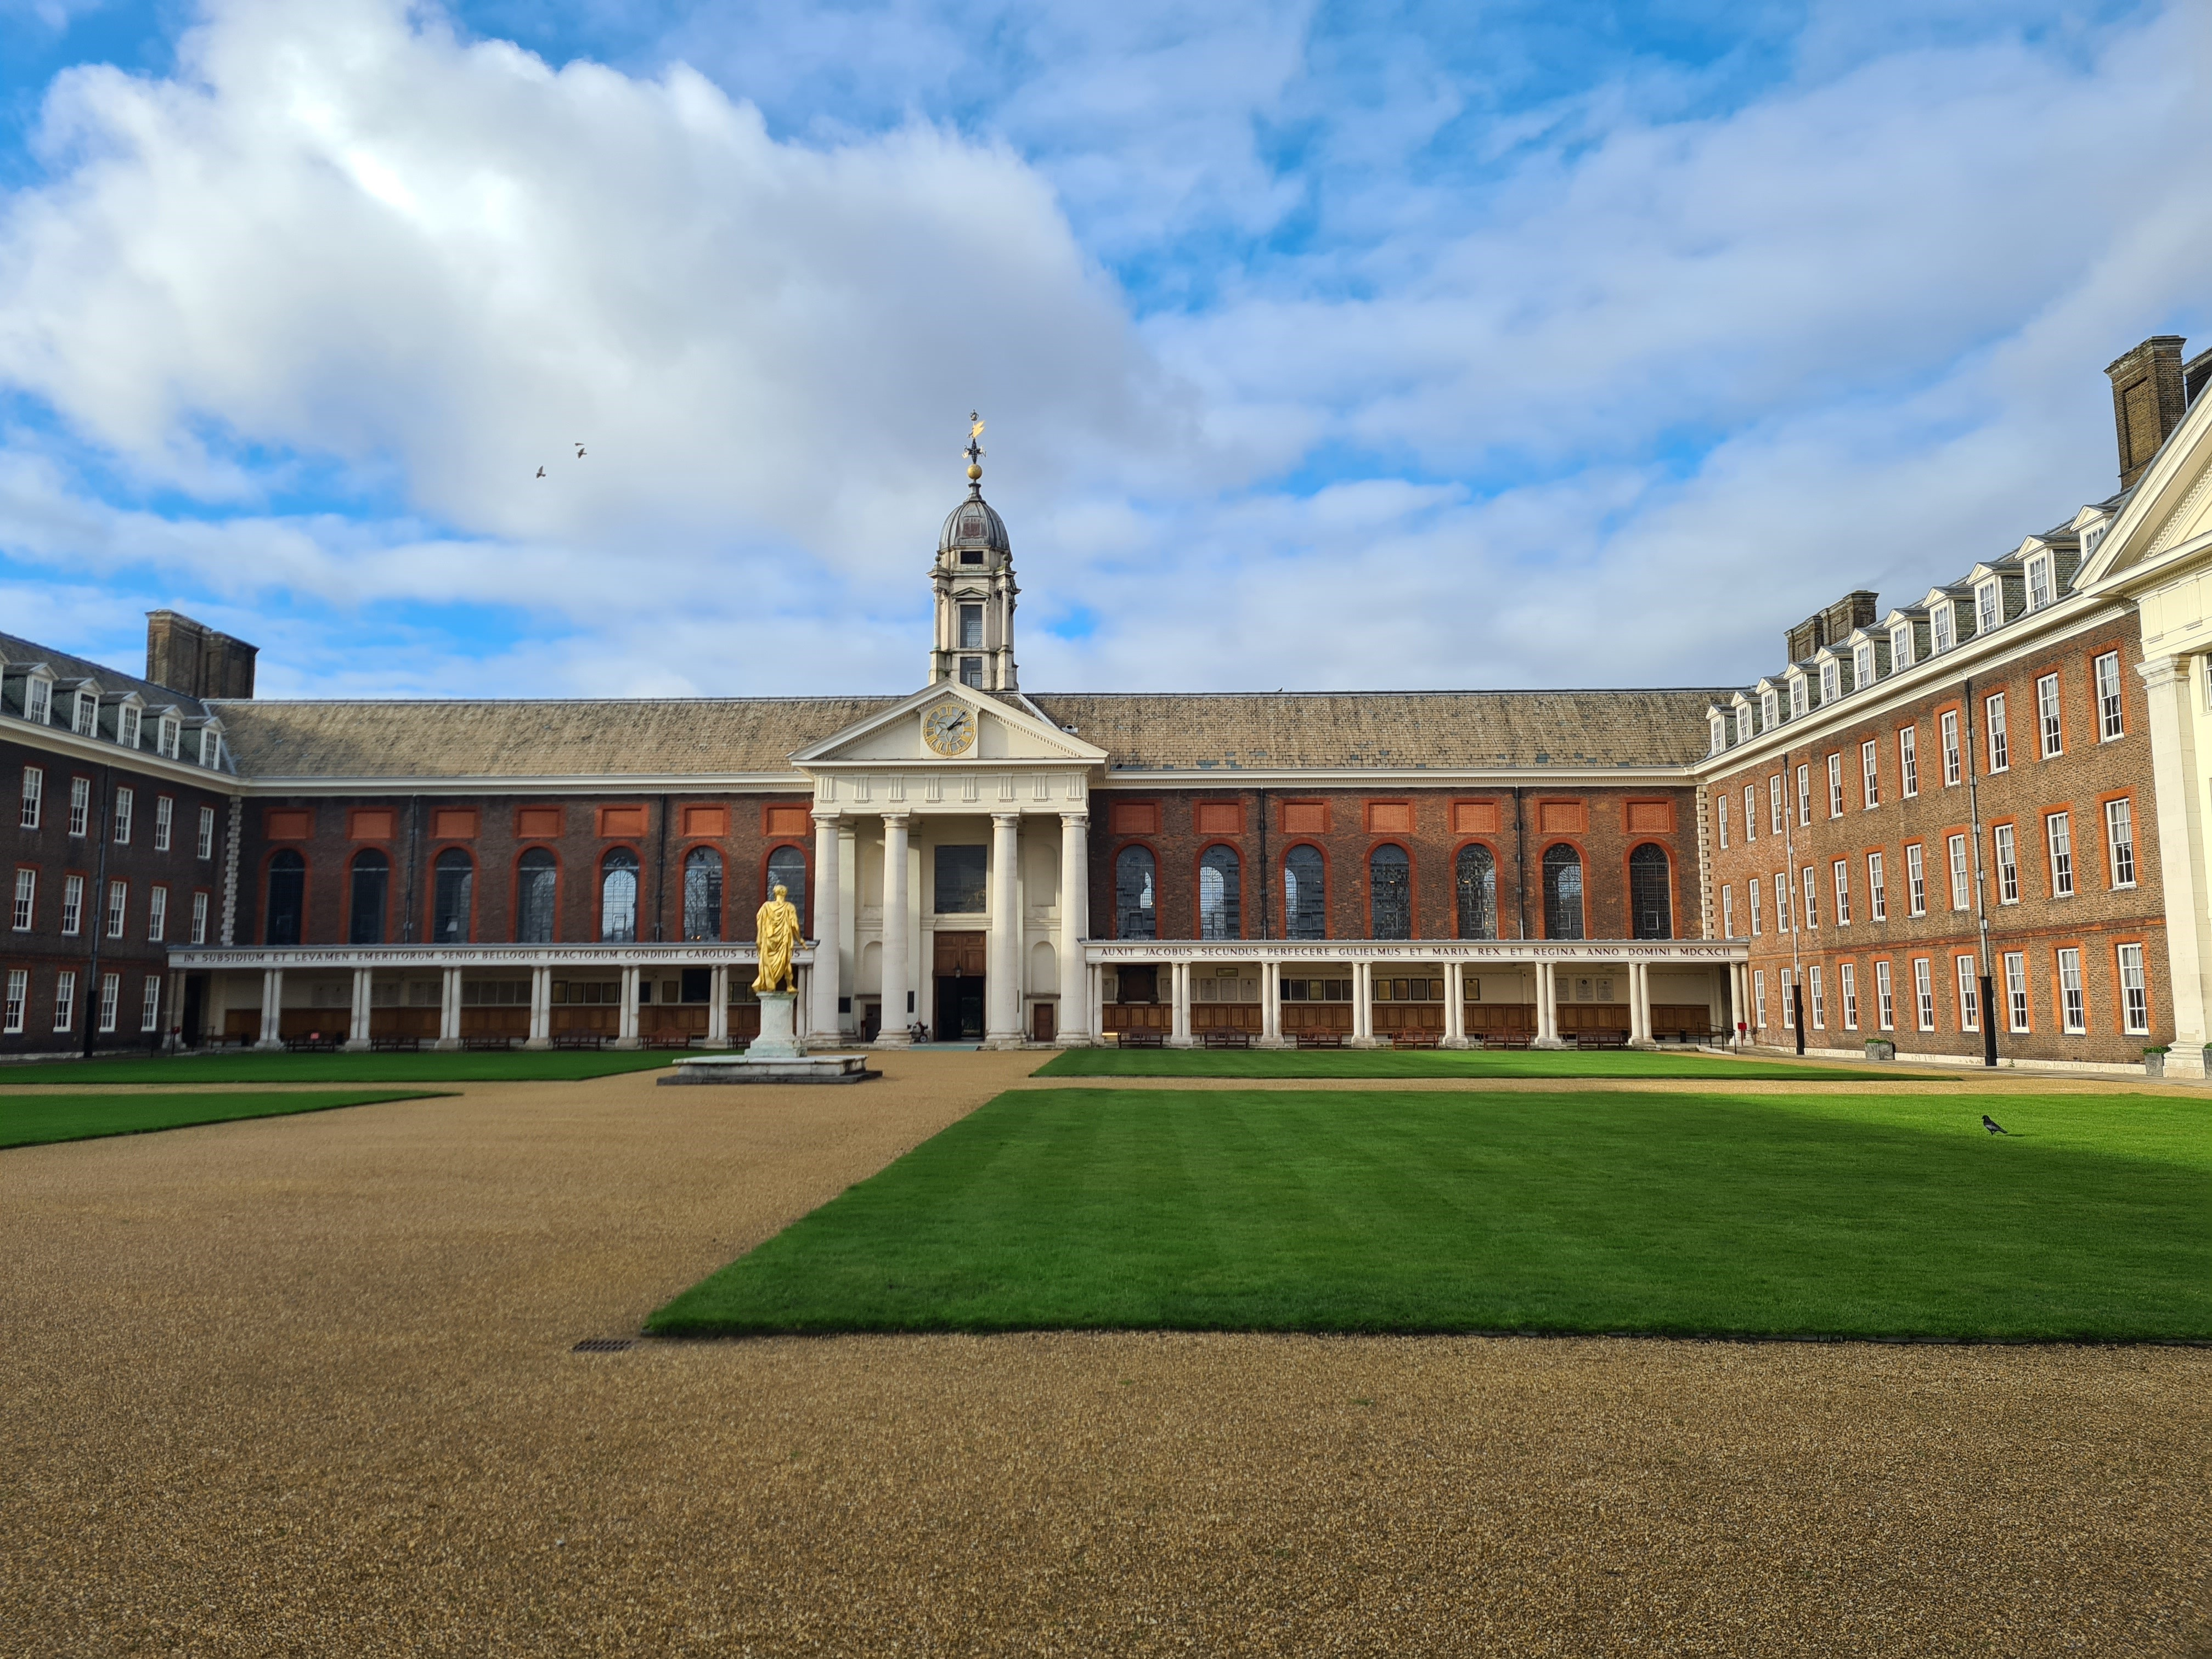 Refurbishment project underway at The Royal Chelsea Hospital